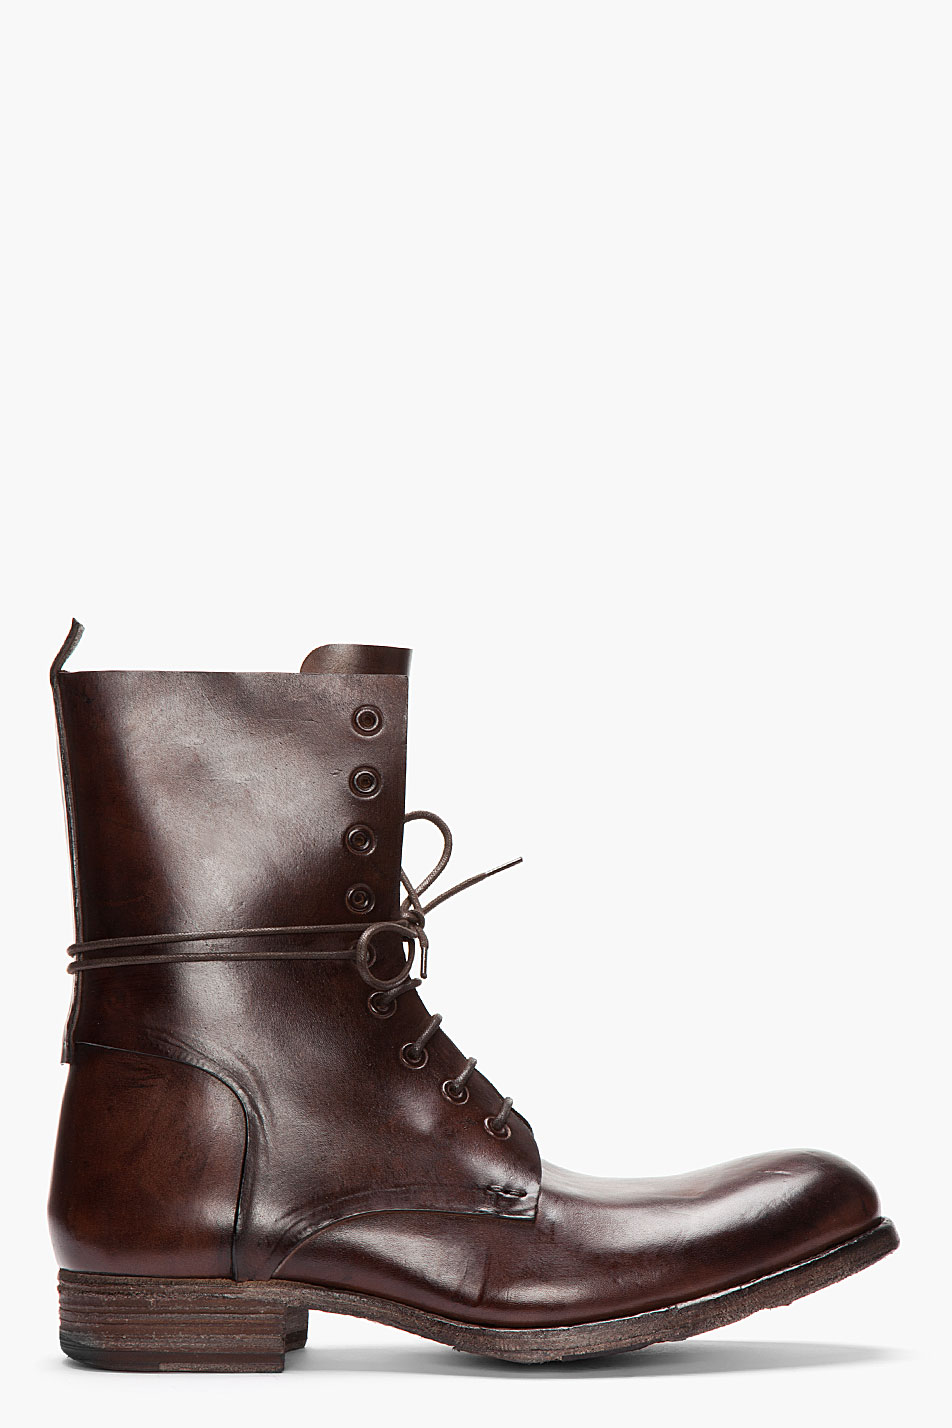 officine creative brown leather culatta lace up boots